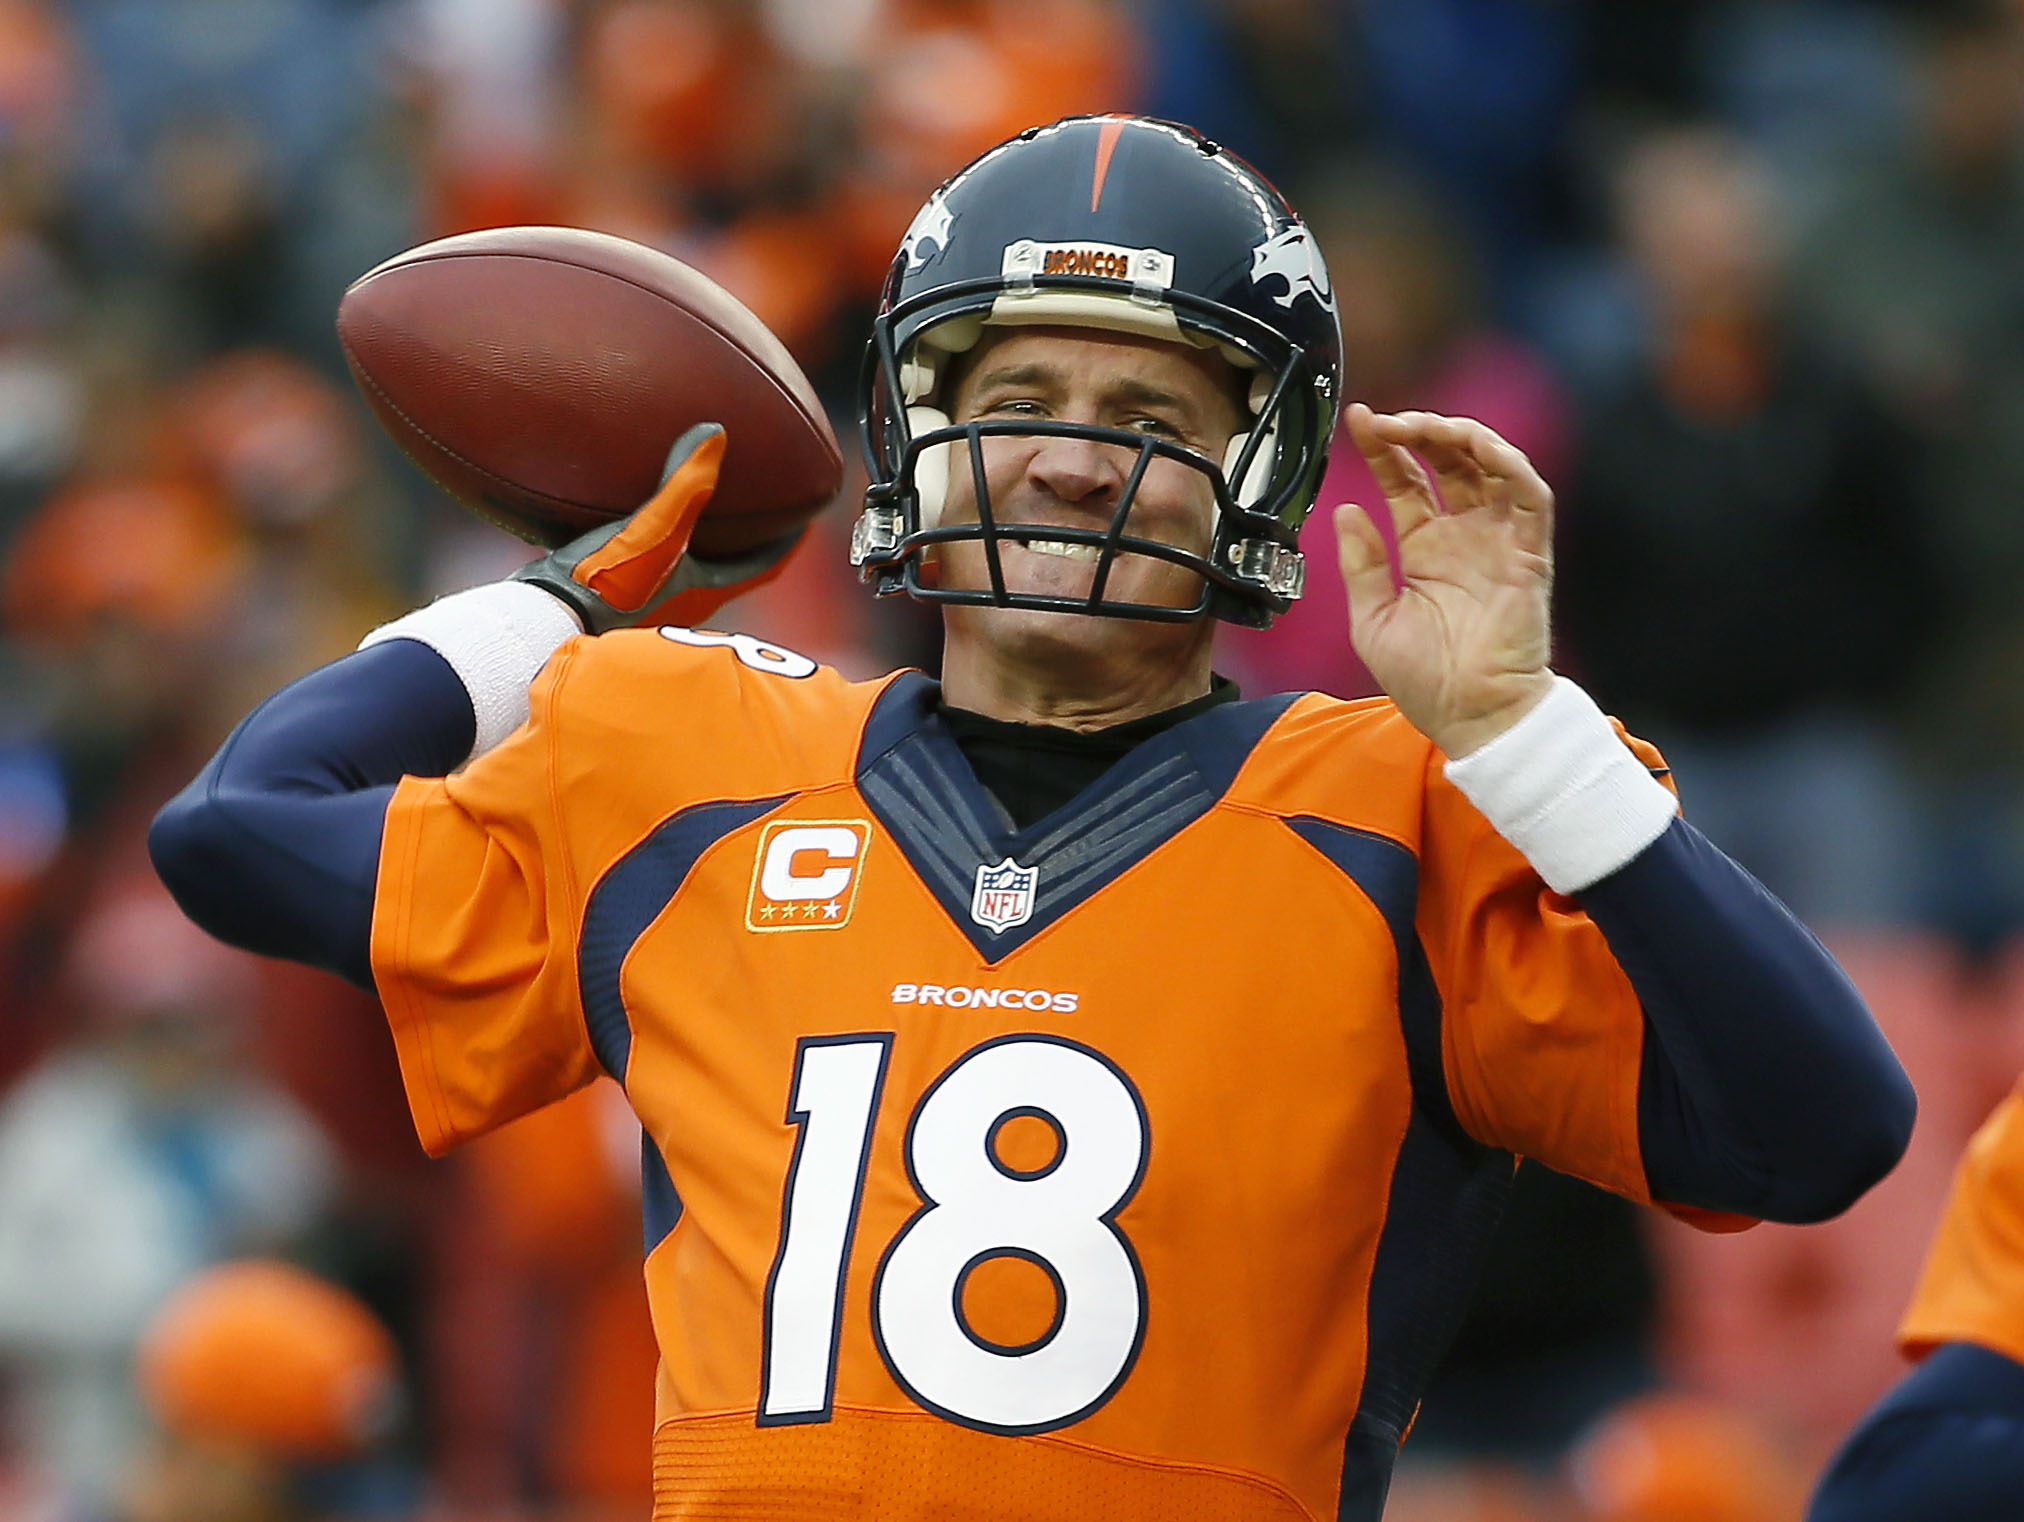 FILE - In this Sunday, Jan. 11, 2015, file photo, Denver Broncos quarterback Peyton Manning (18) warms up prior to an NFL divisional playoff football game against the Indianapolis Colts in Denver. Manning can earn back every penny of the $4 million pay cu